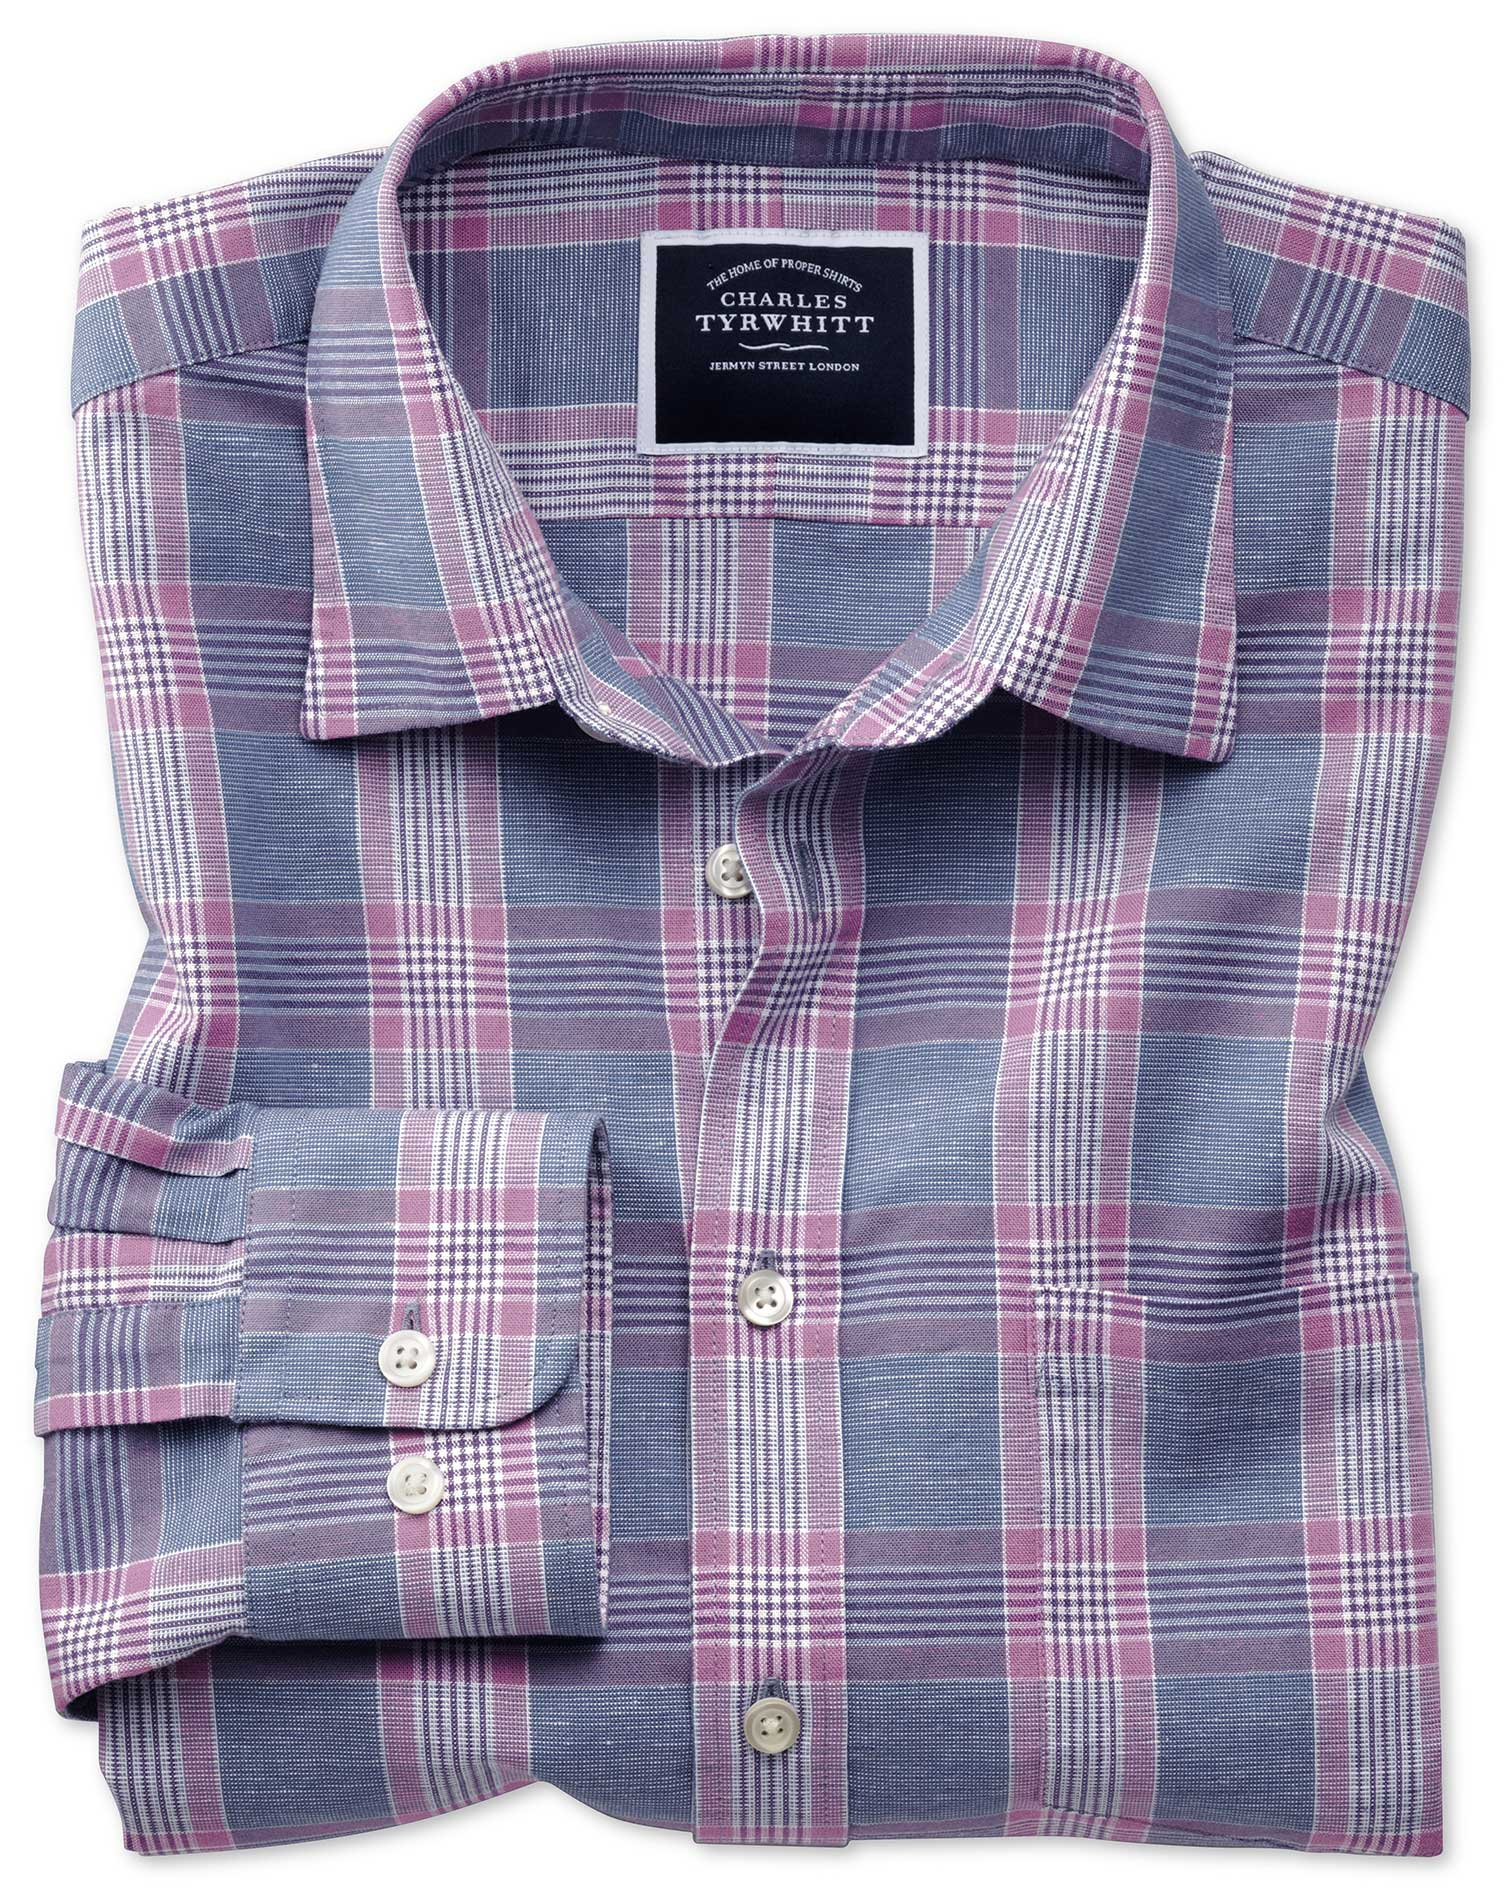 Classic Fit Cotton Linen Blue and Purple Check Shirt Single Cuff Size XXL by Charles Tyrwhitt